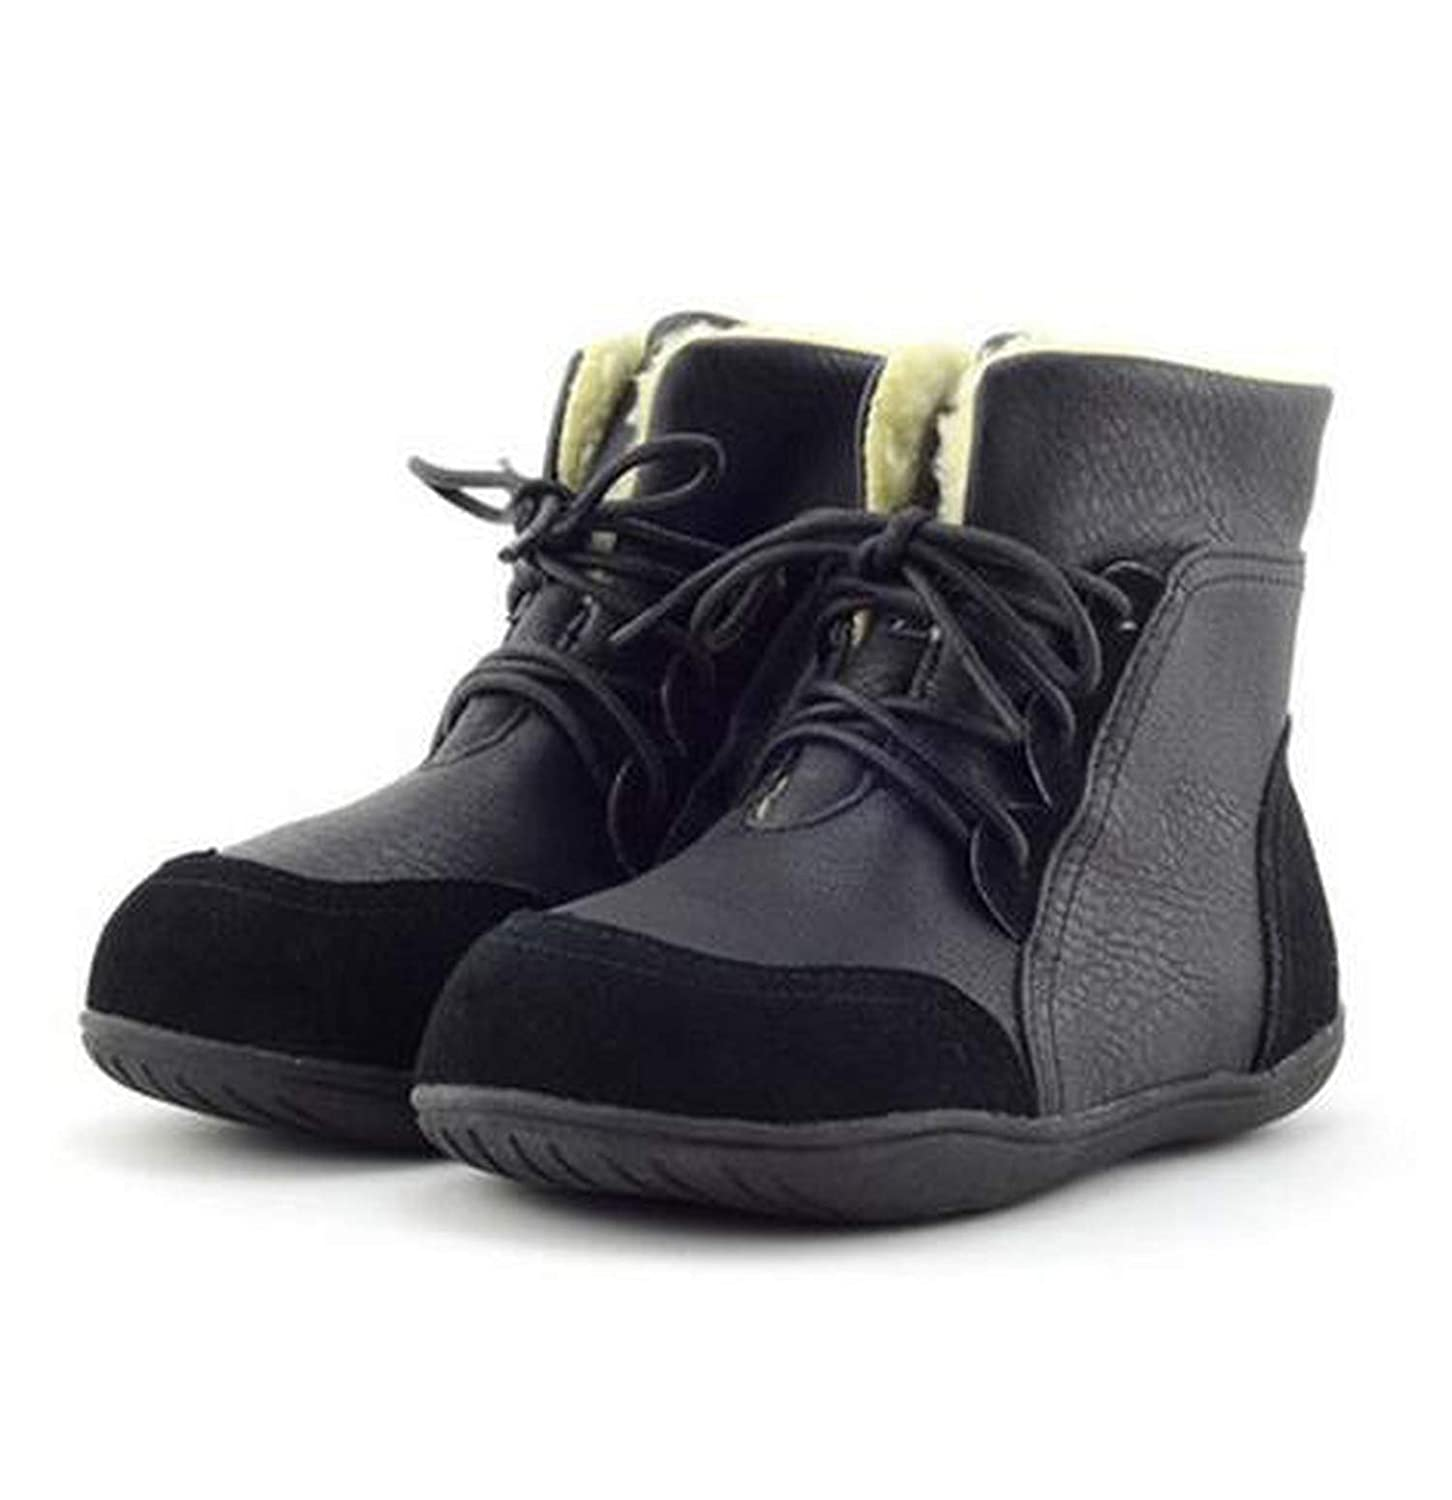 Leather Child Shoes Slip-Resistant Martin Boots Medium-Leg Cotton-Padded Sport Shoes Sneaker